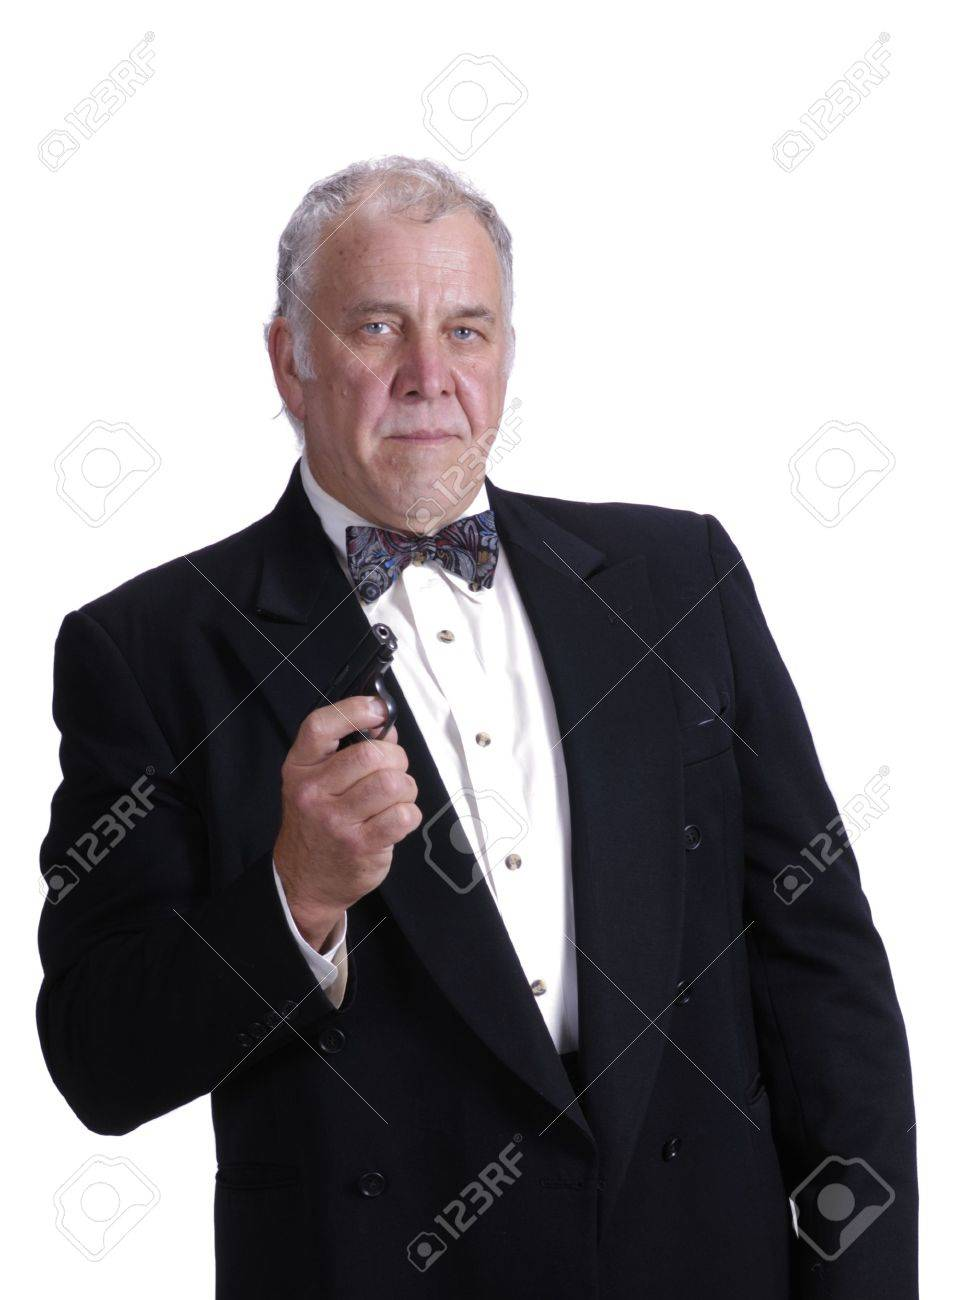 Older Businessman In A Suit Impersonating James Bond Isolated